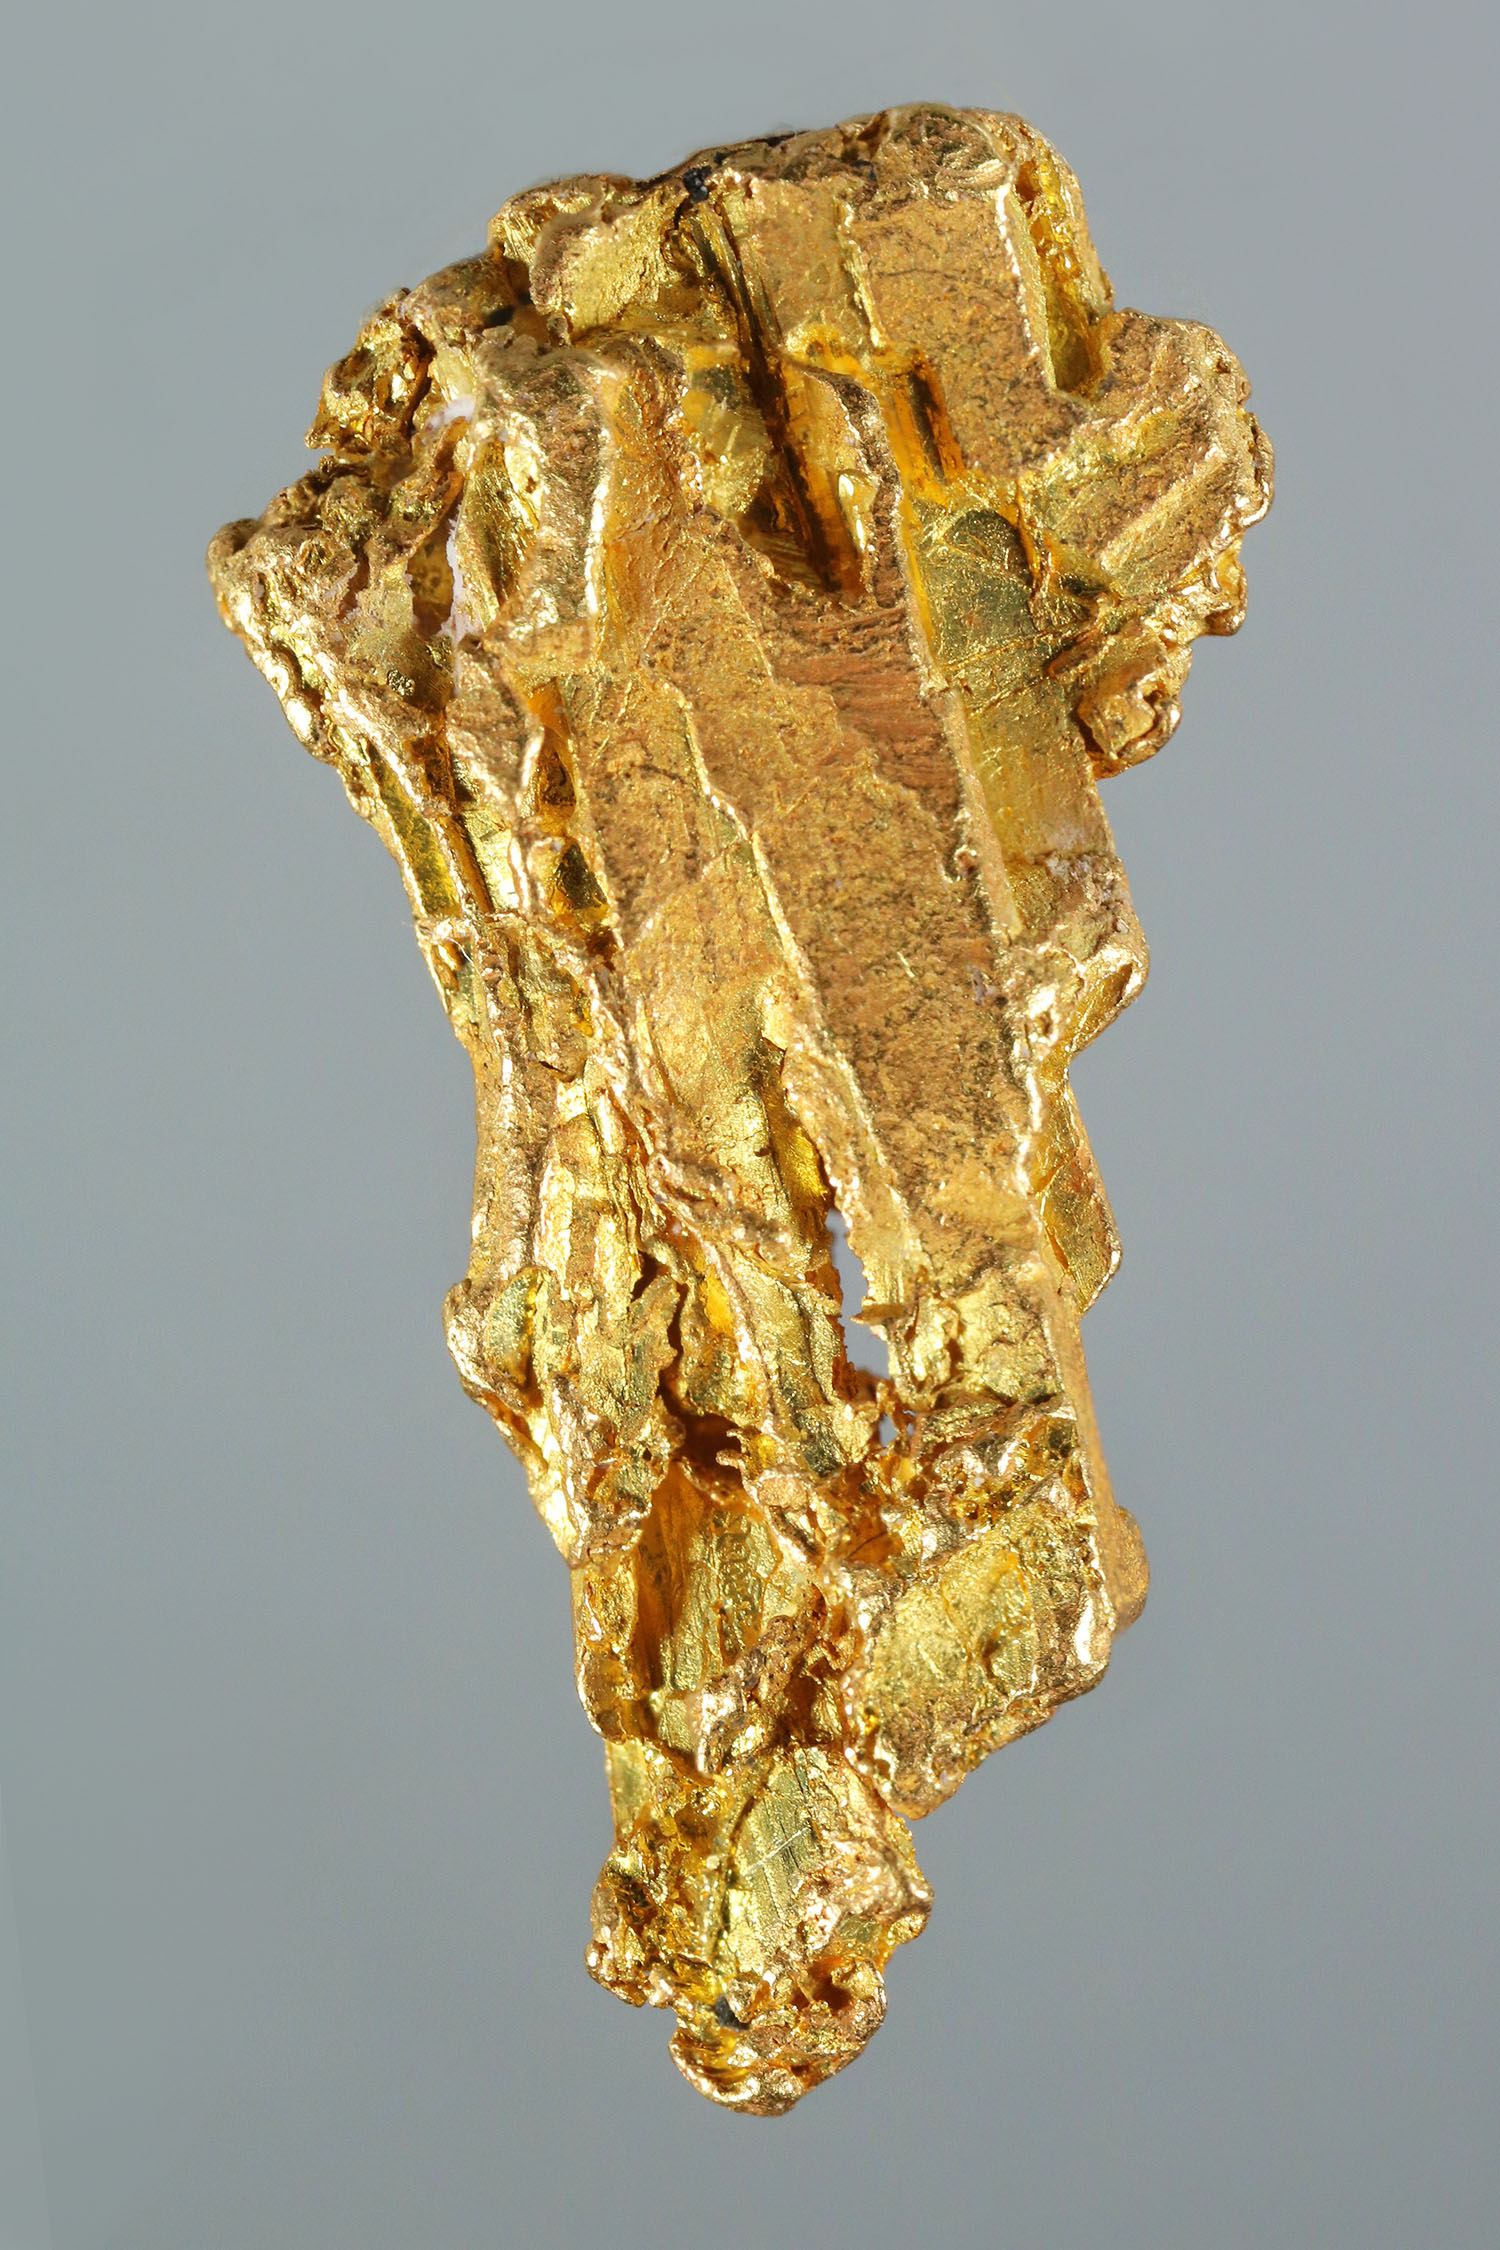 Long Striations and Chevron Crystals - Yukon Gold Crystal Nugget